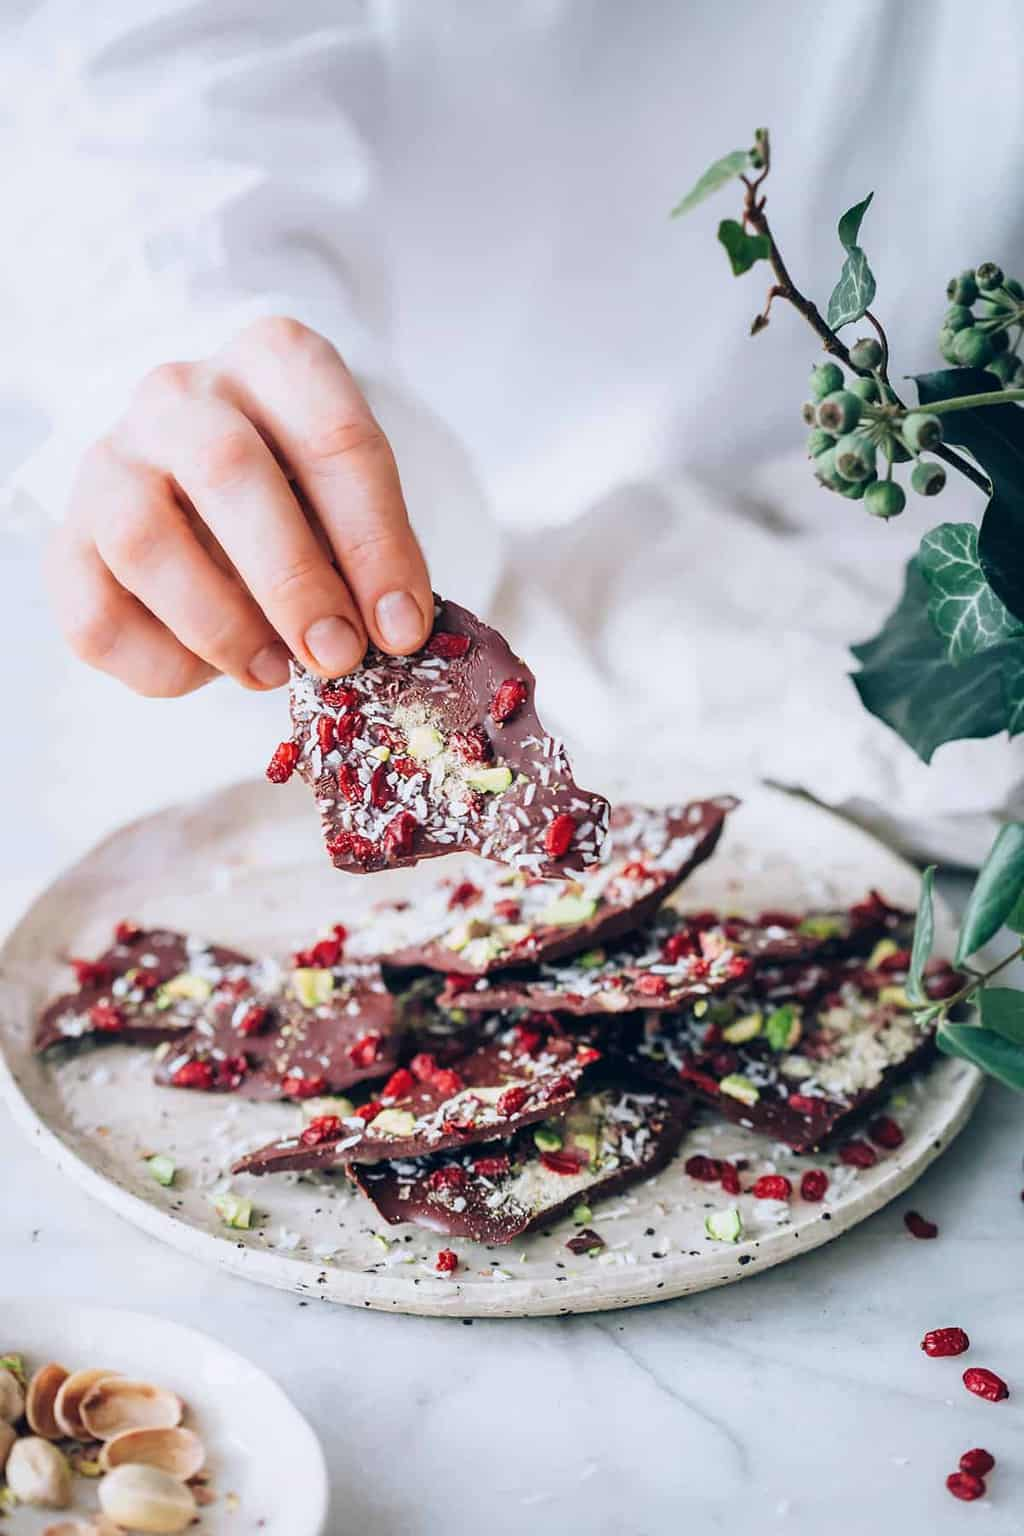 This Festive Chocolate Lucuma Bark is Packed with Nutrients